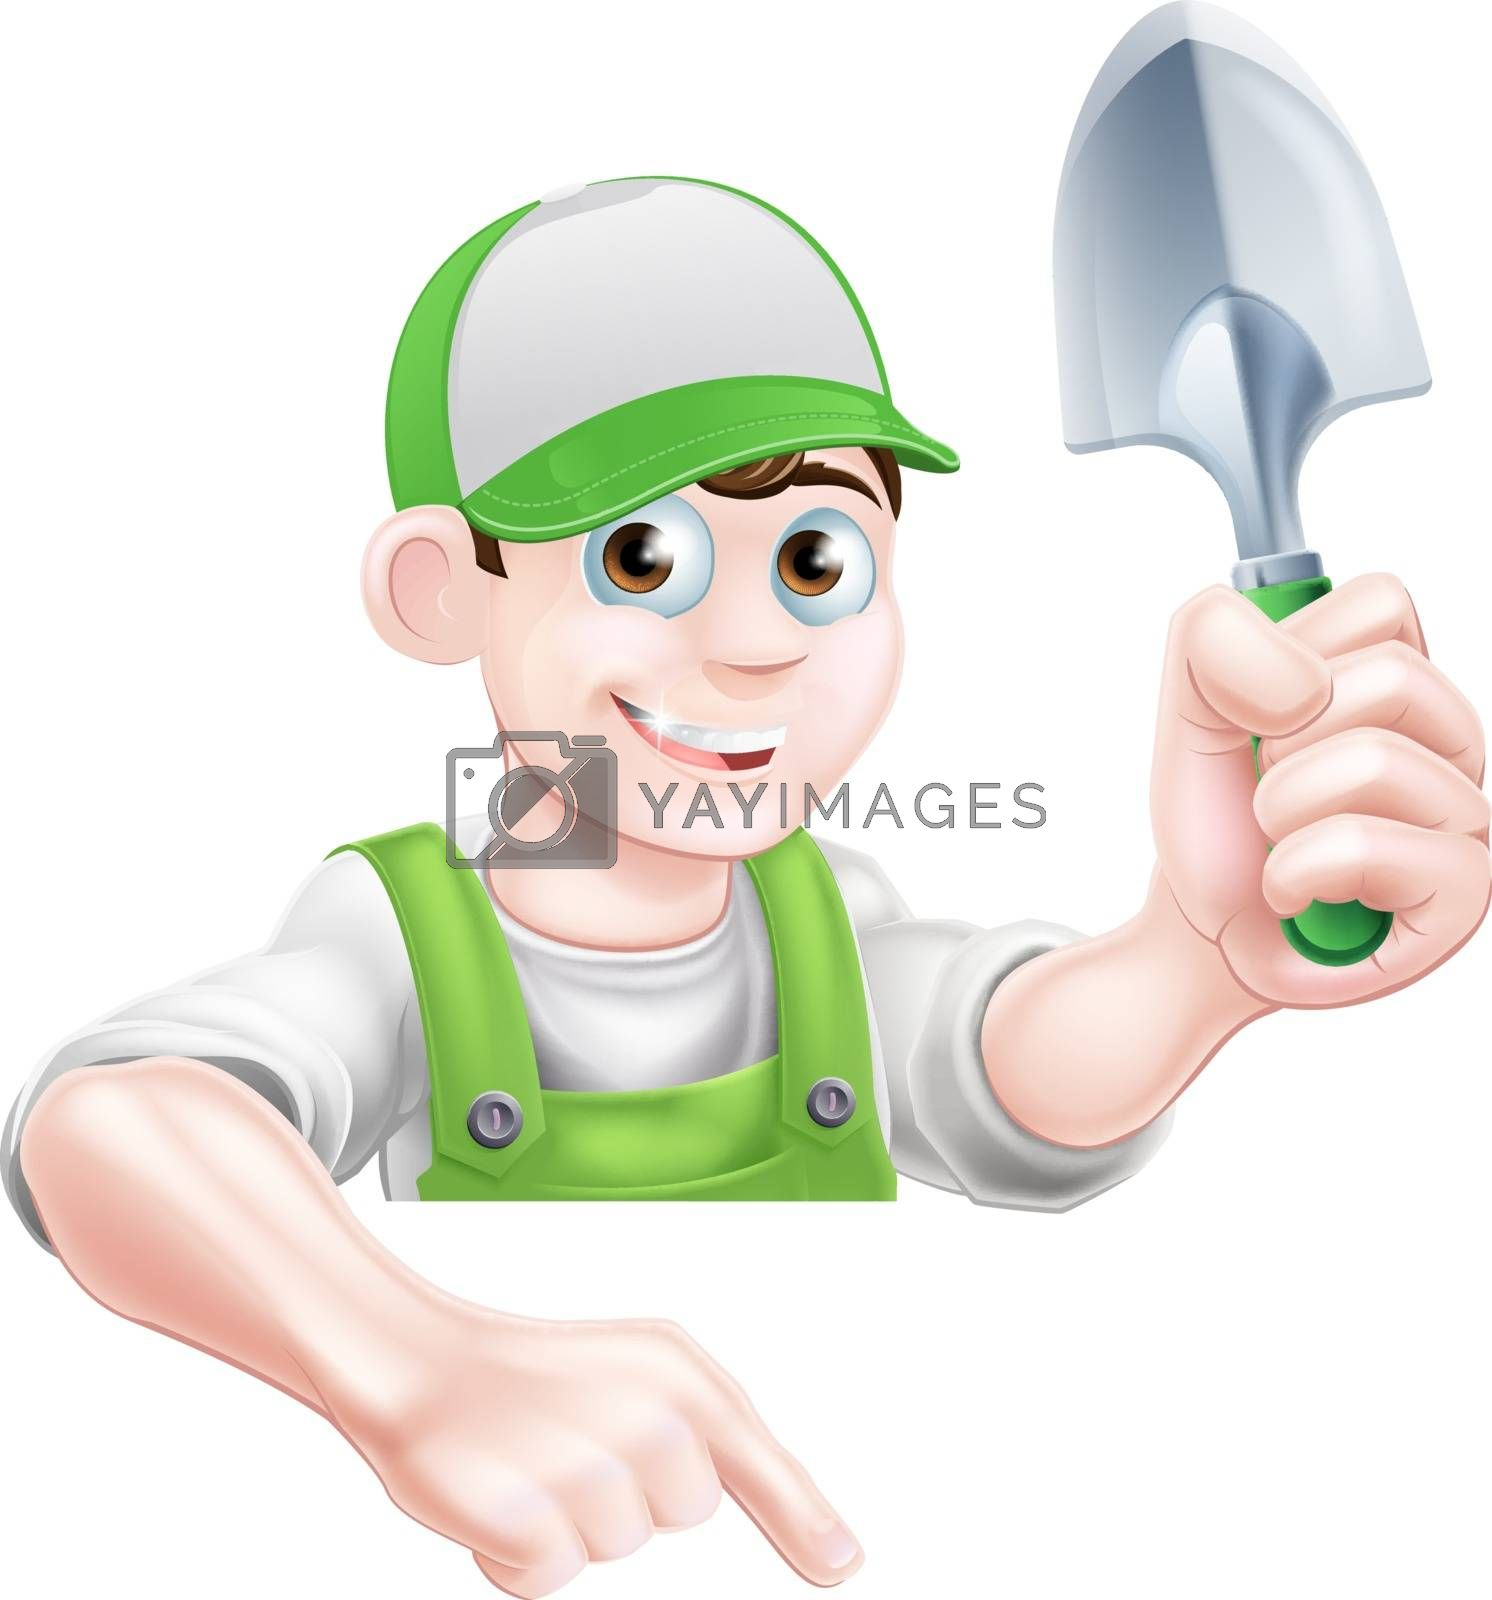 A cartoon gardener character in a cap and green dungarees holding a garden trowel tool and pointing down